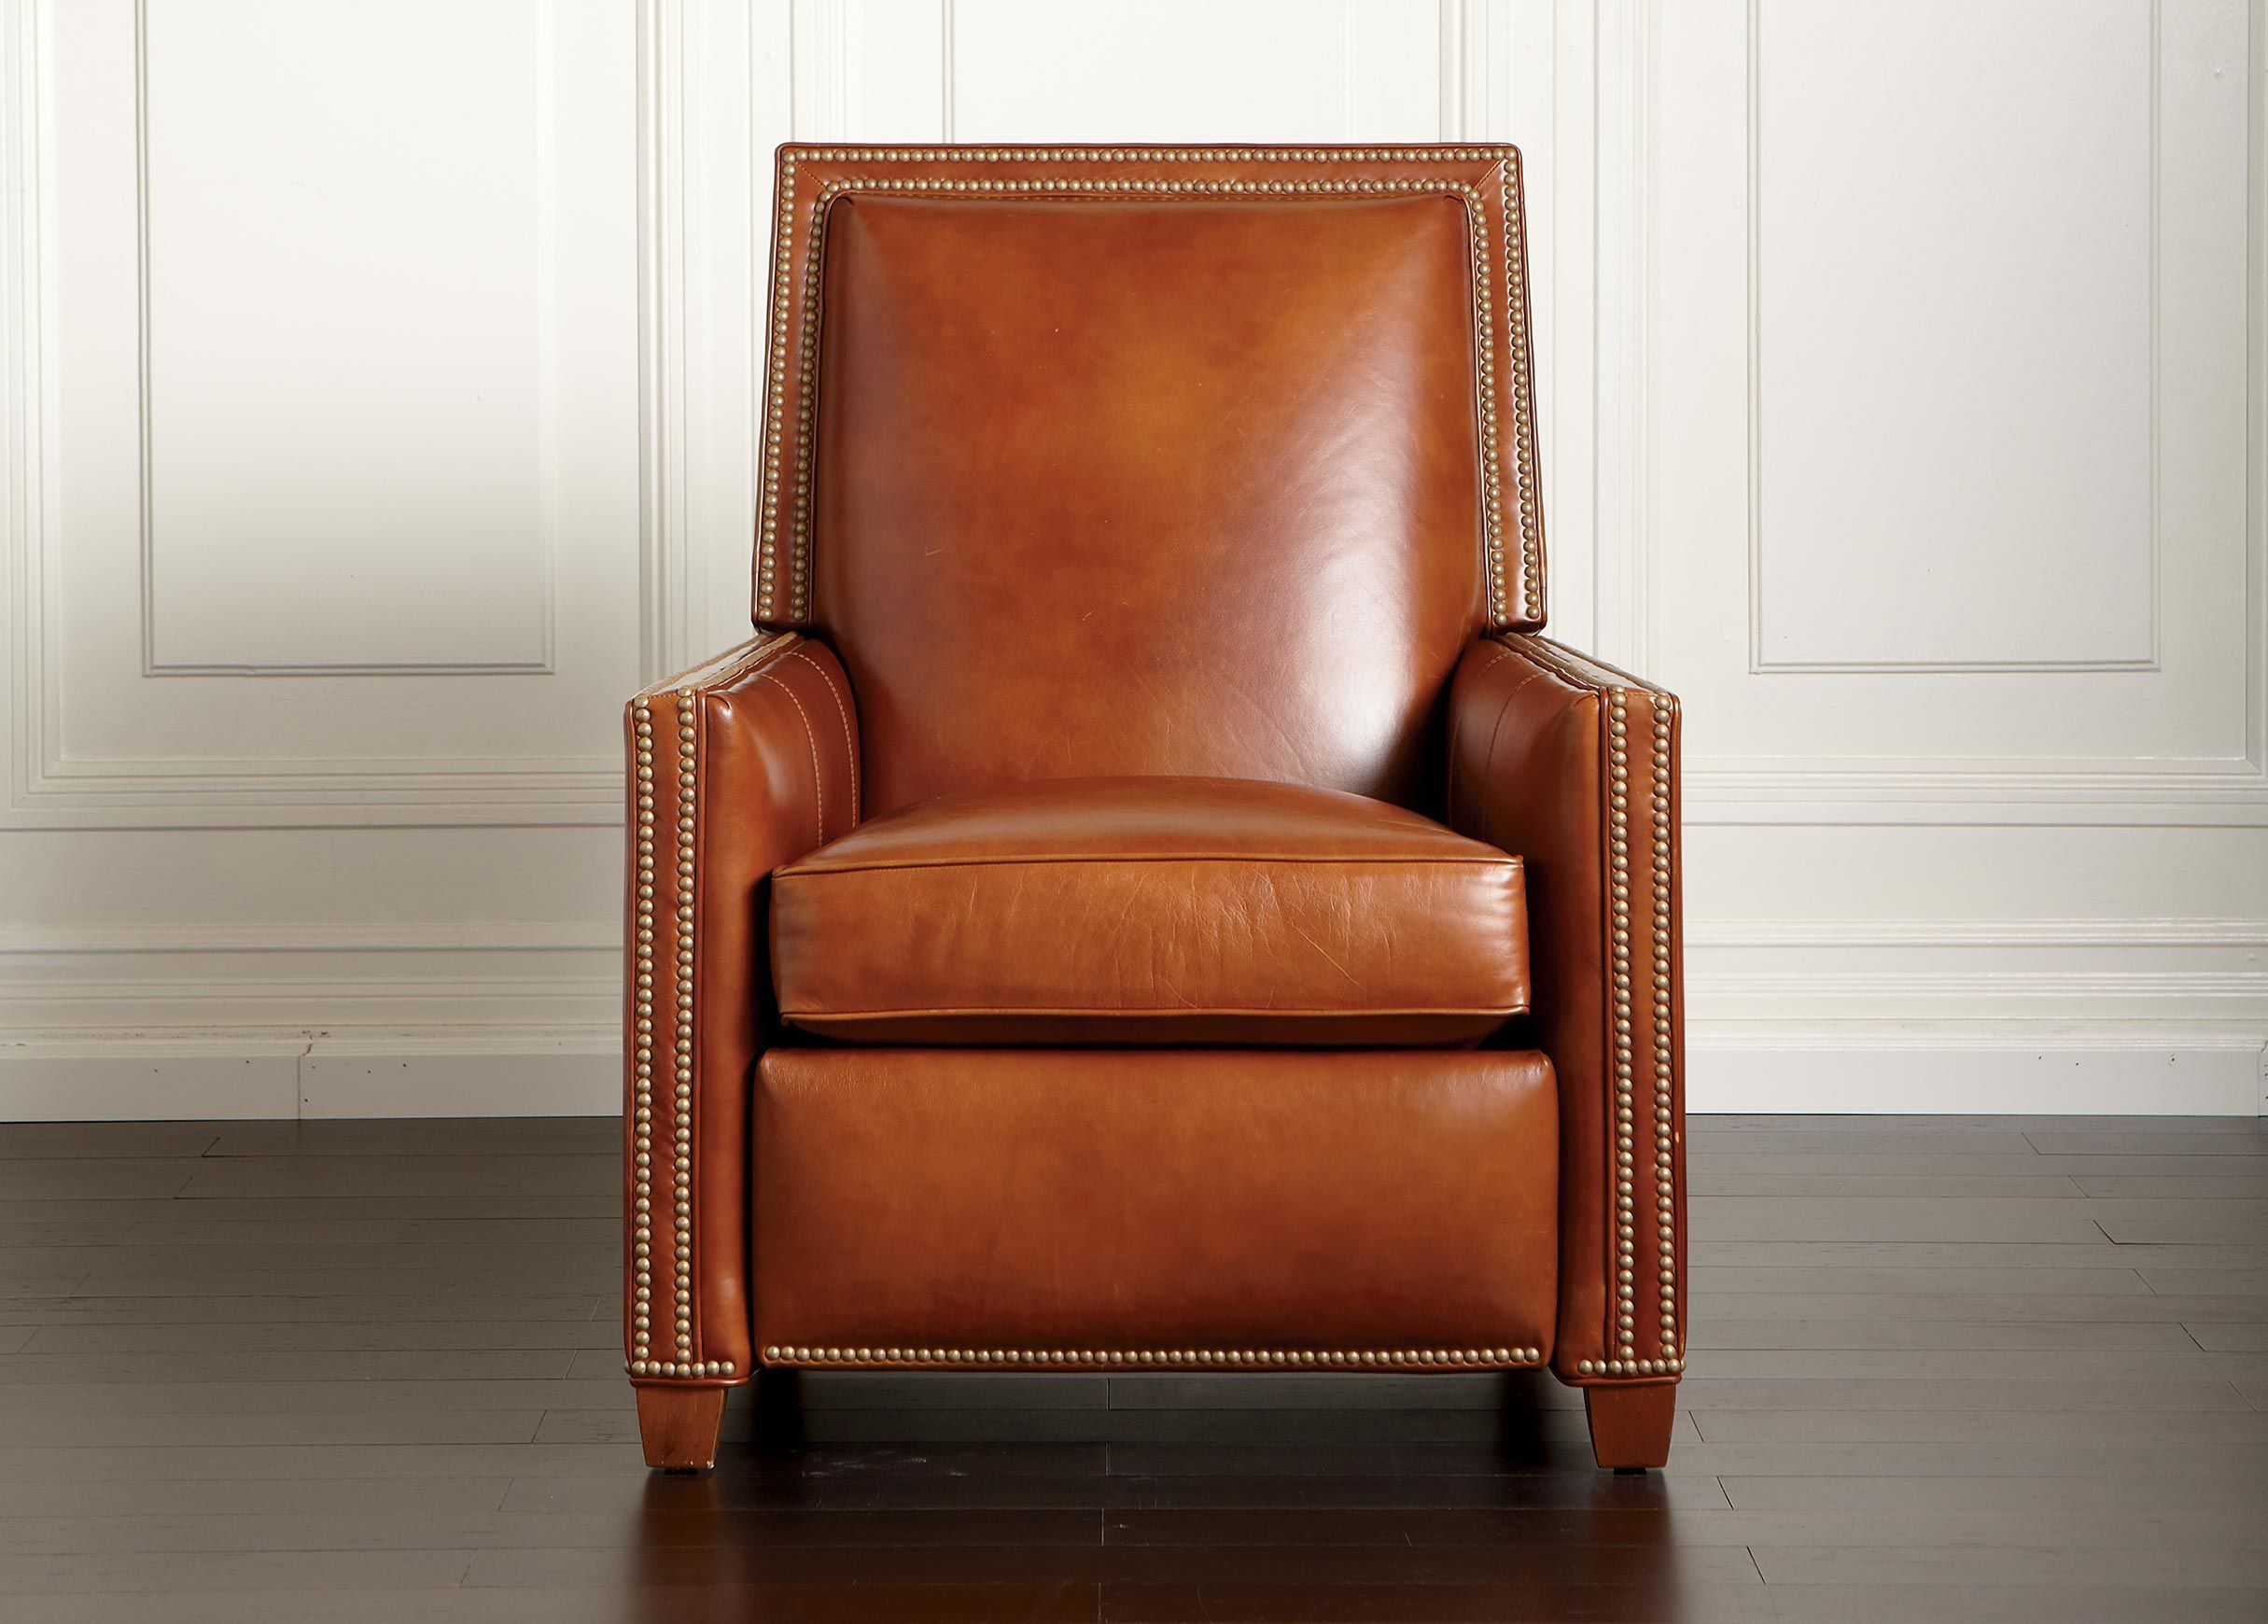 Randall Leather Recliner Item 737915 Starting at 2,349